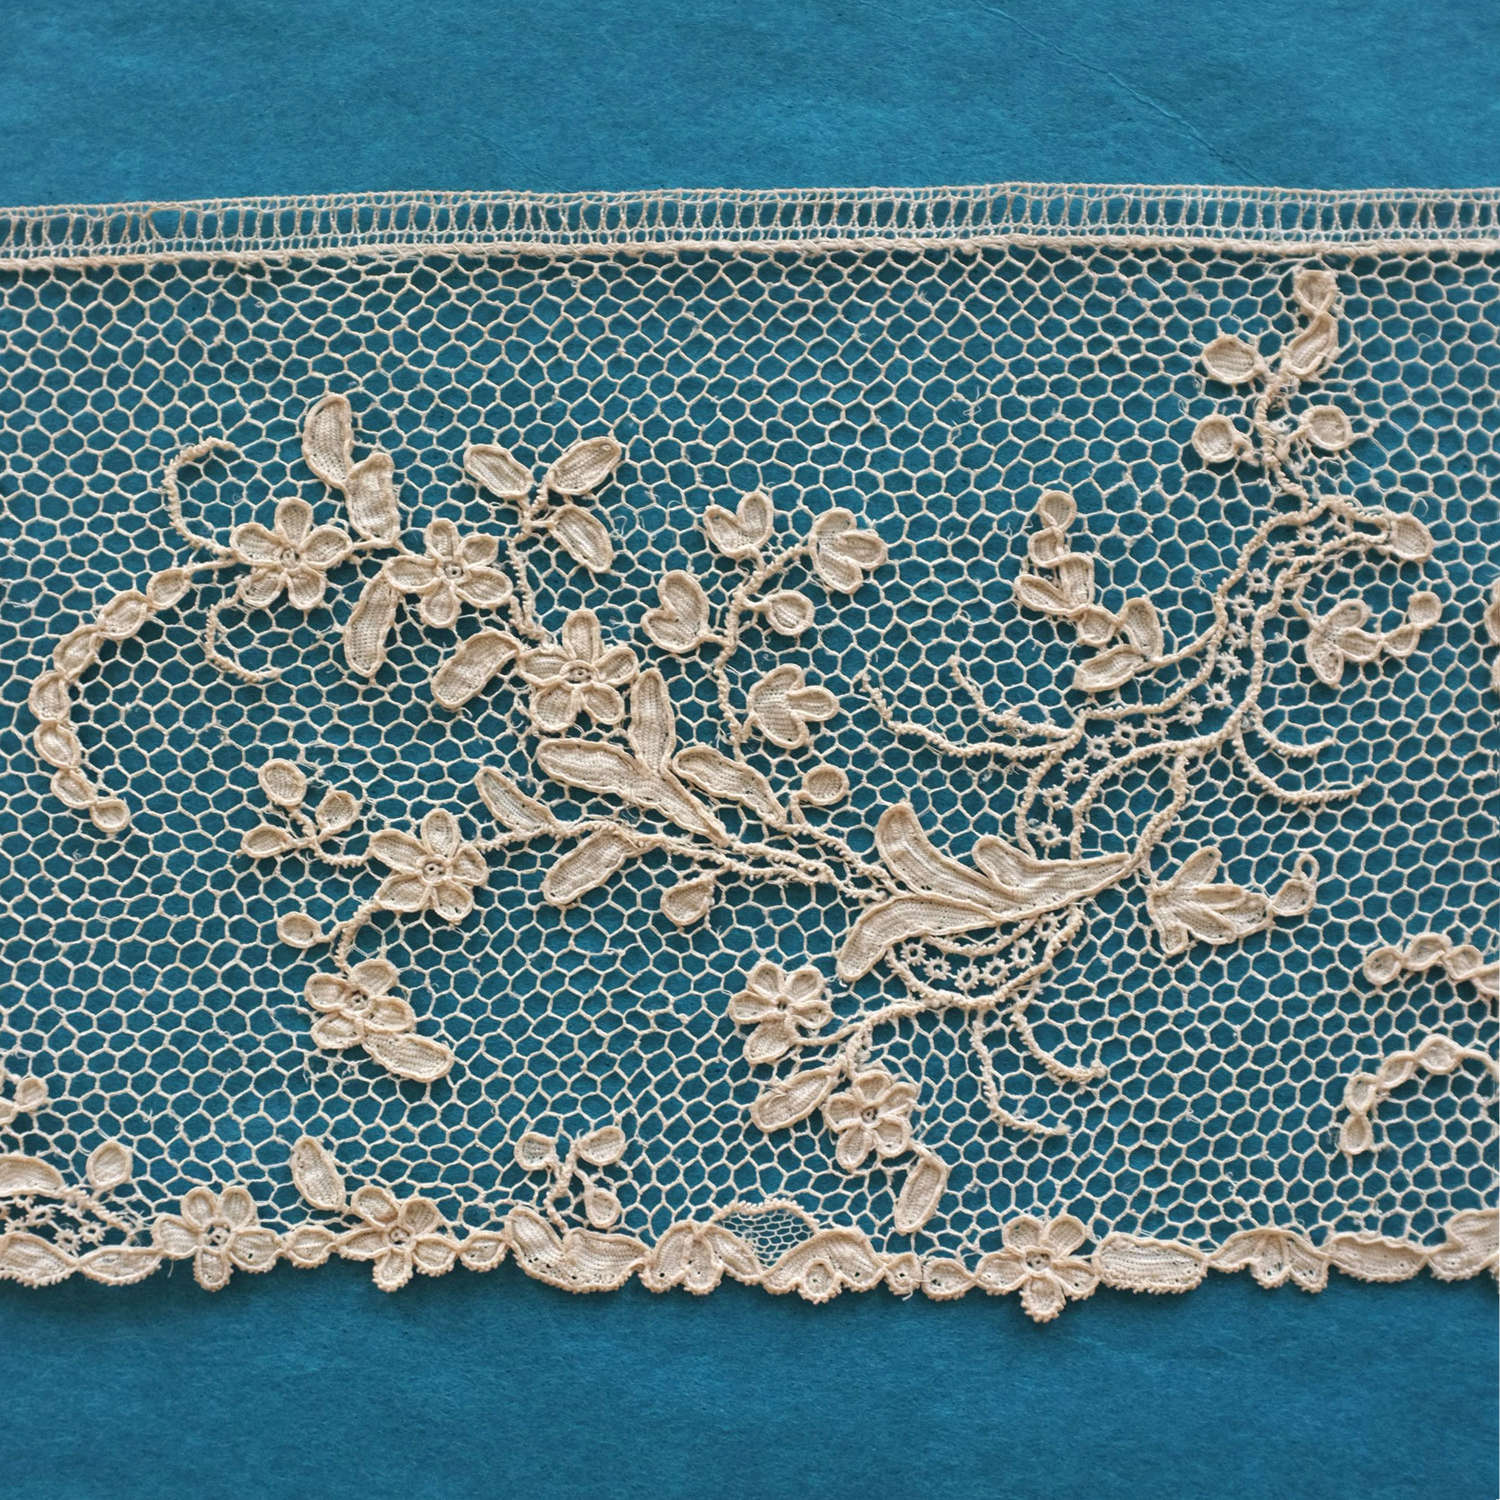 Antique 18th Century Argentan Lace Border, circa 1760